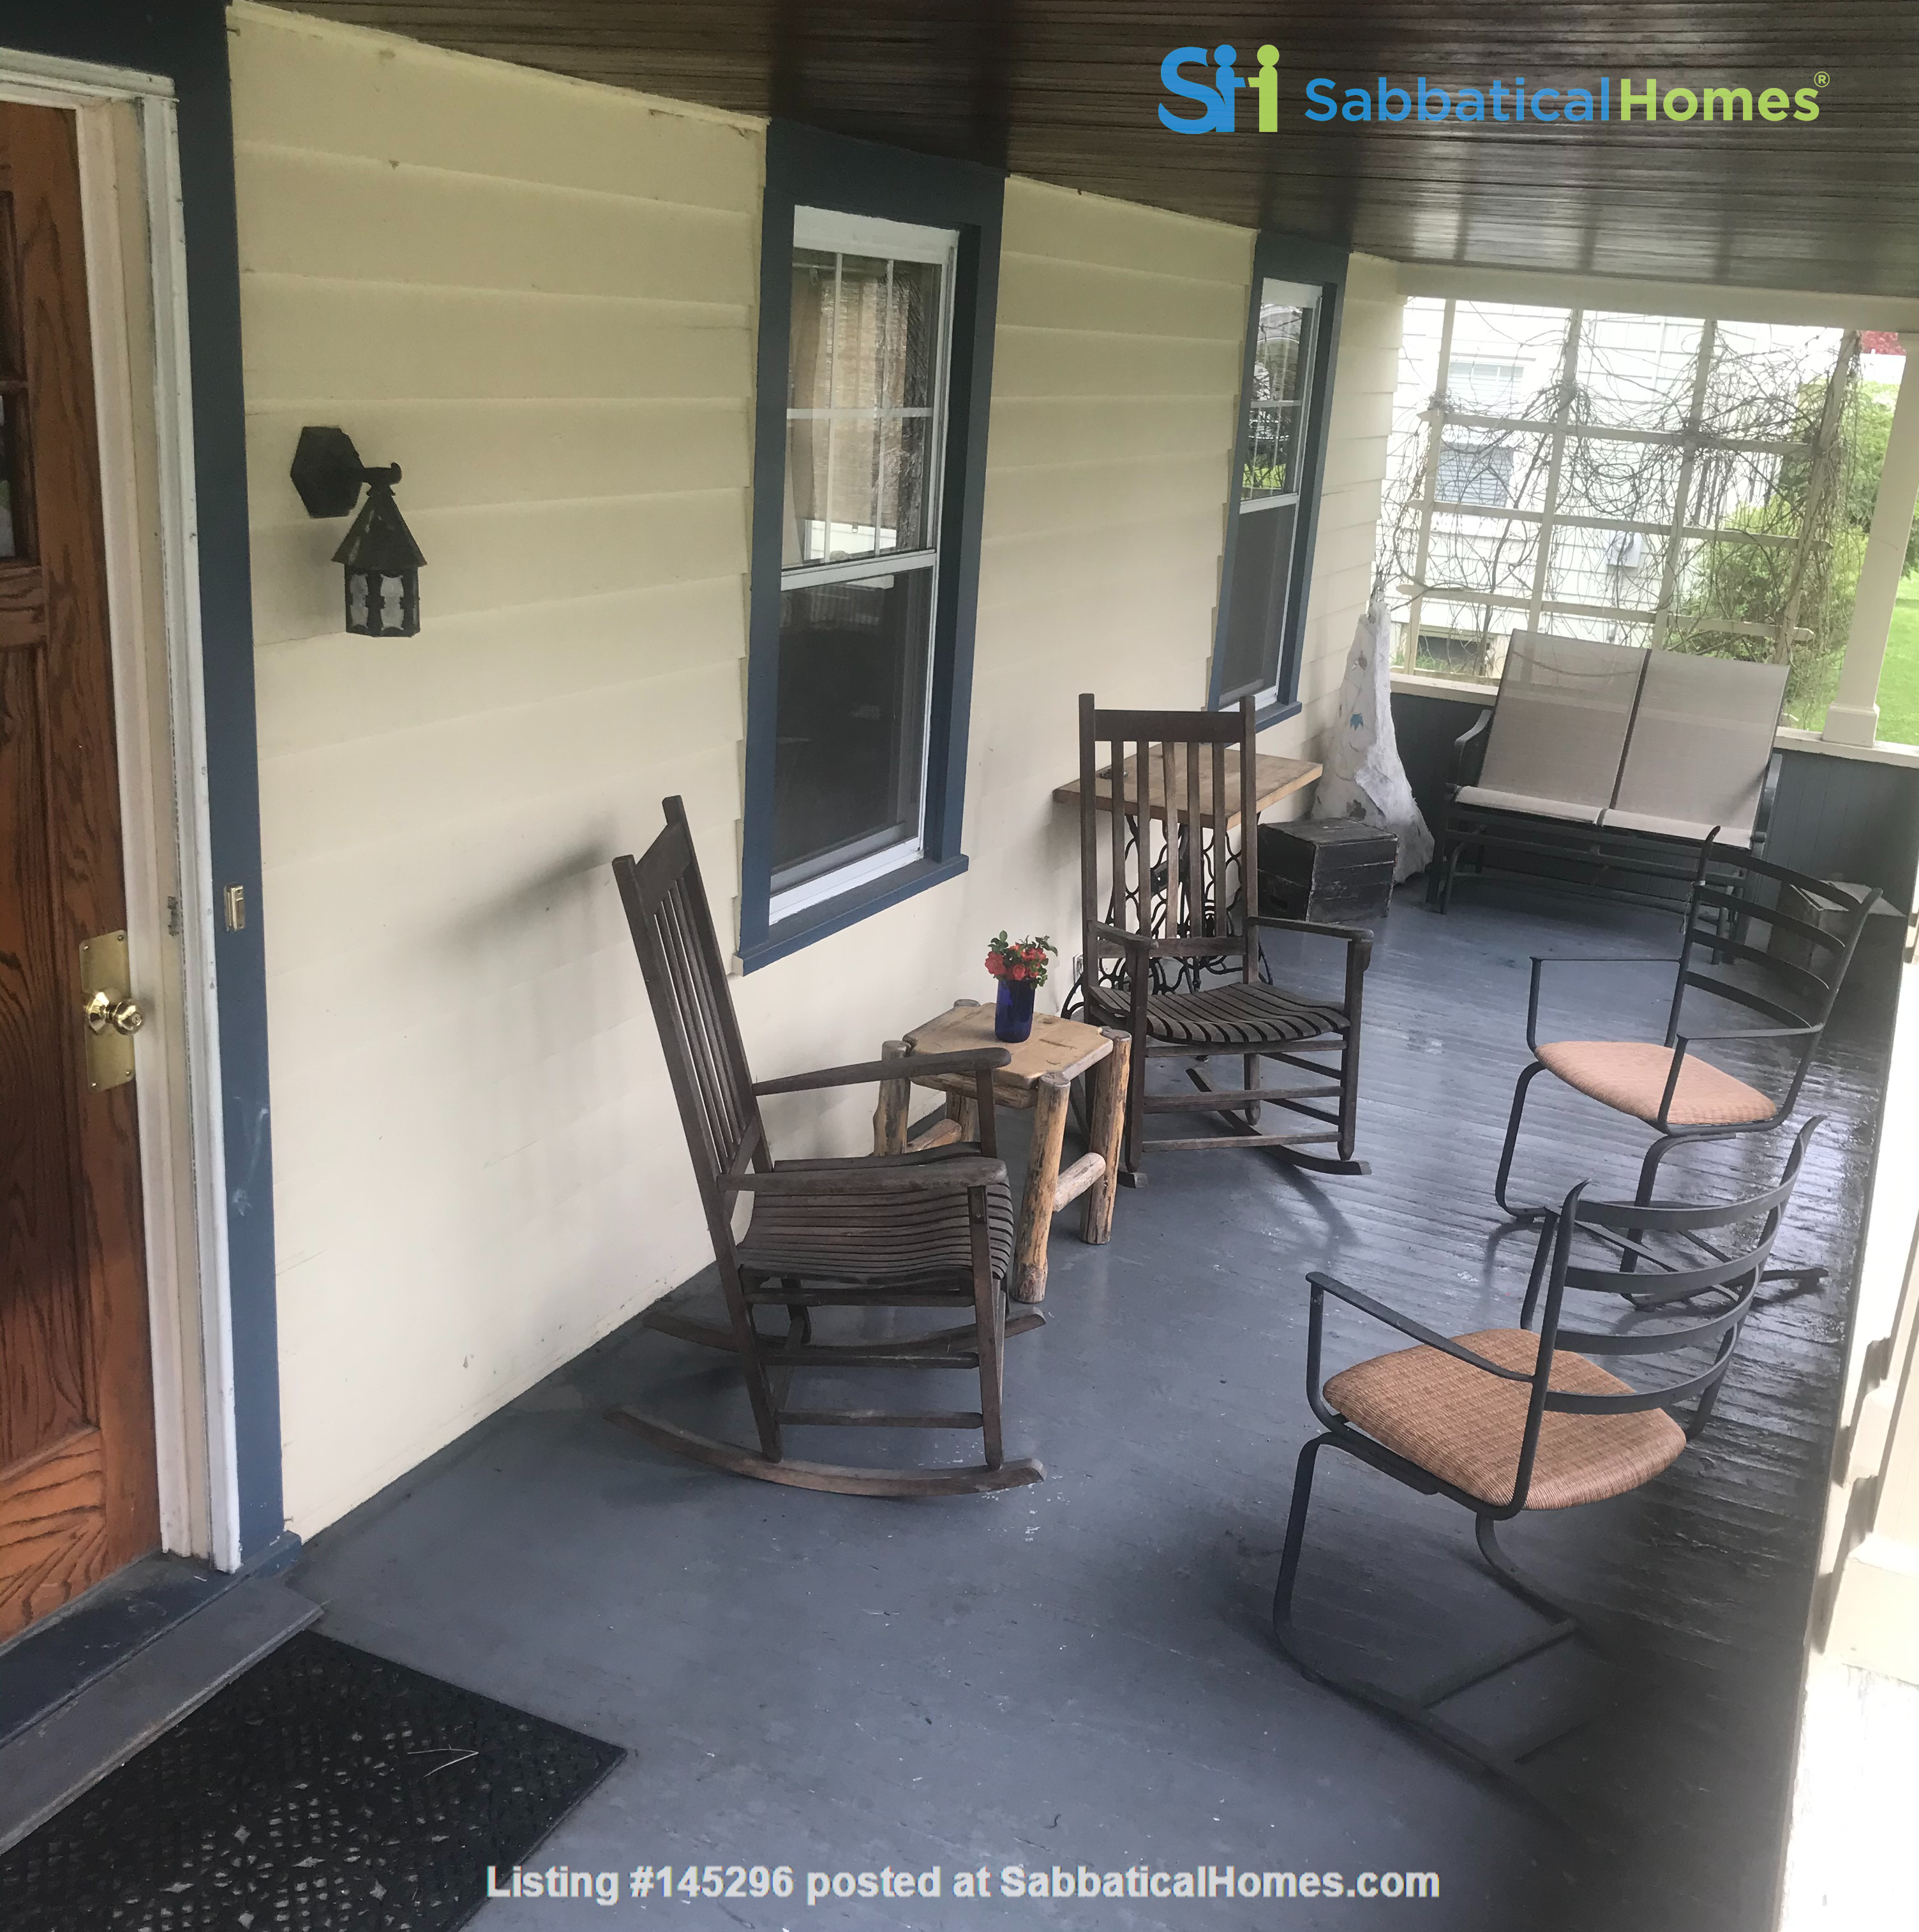 Charming 4 bedroom home in Williamstown - walk to campus and downtown Home Rental in Williamstown, Massachusetts, United States 4